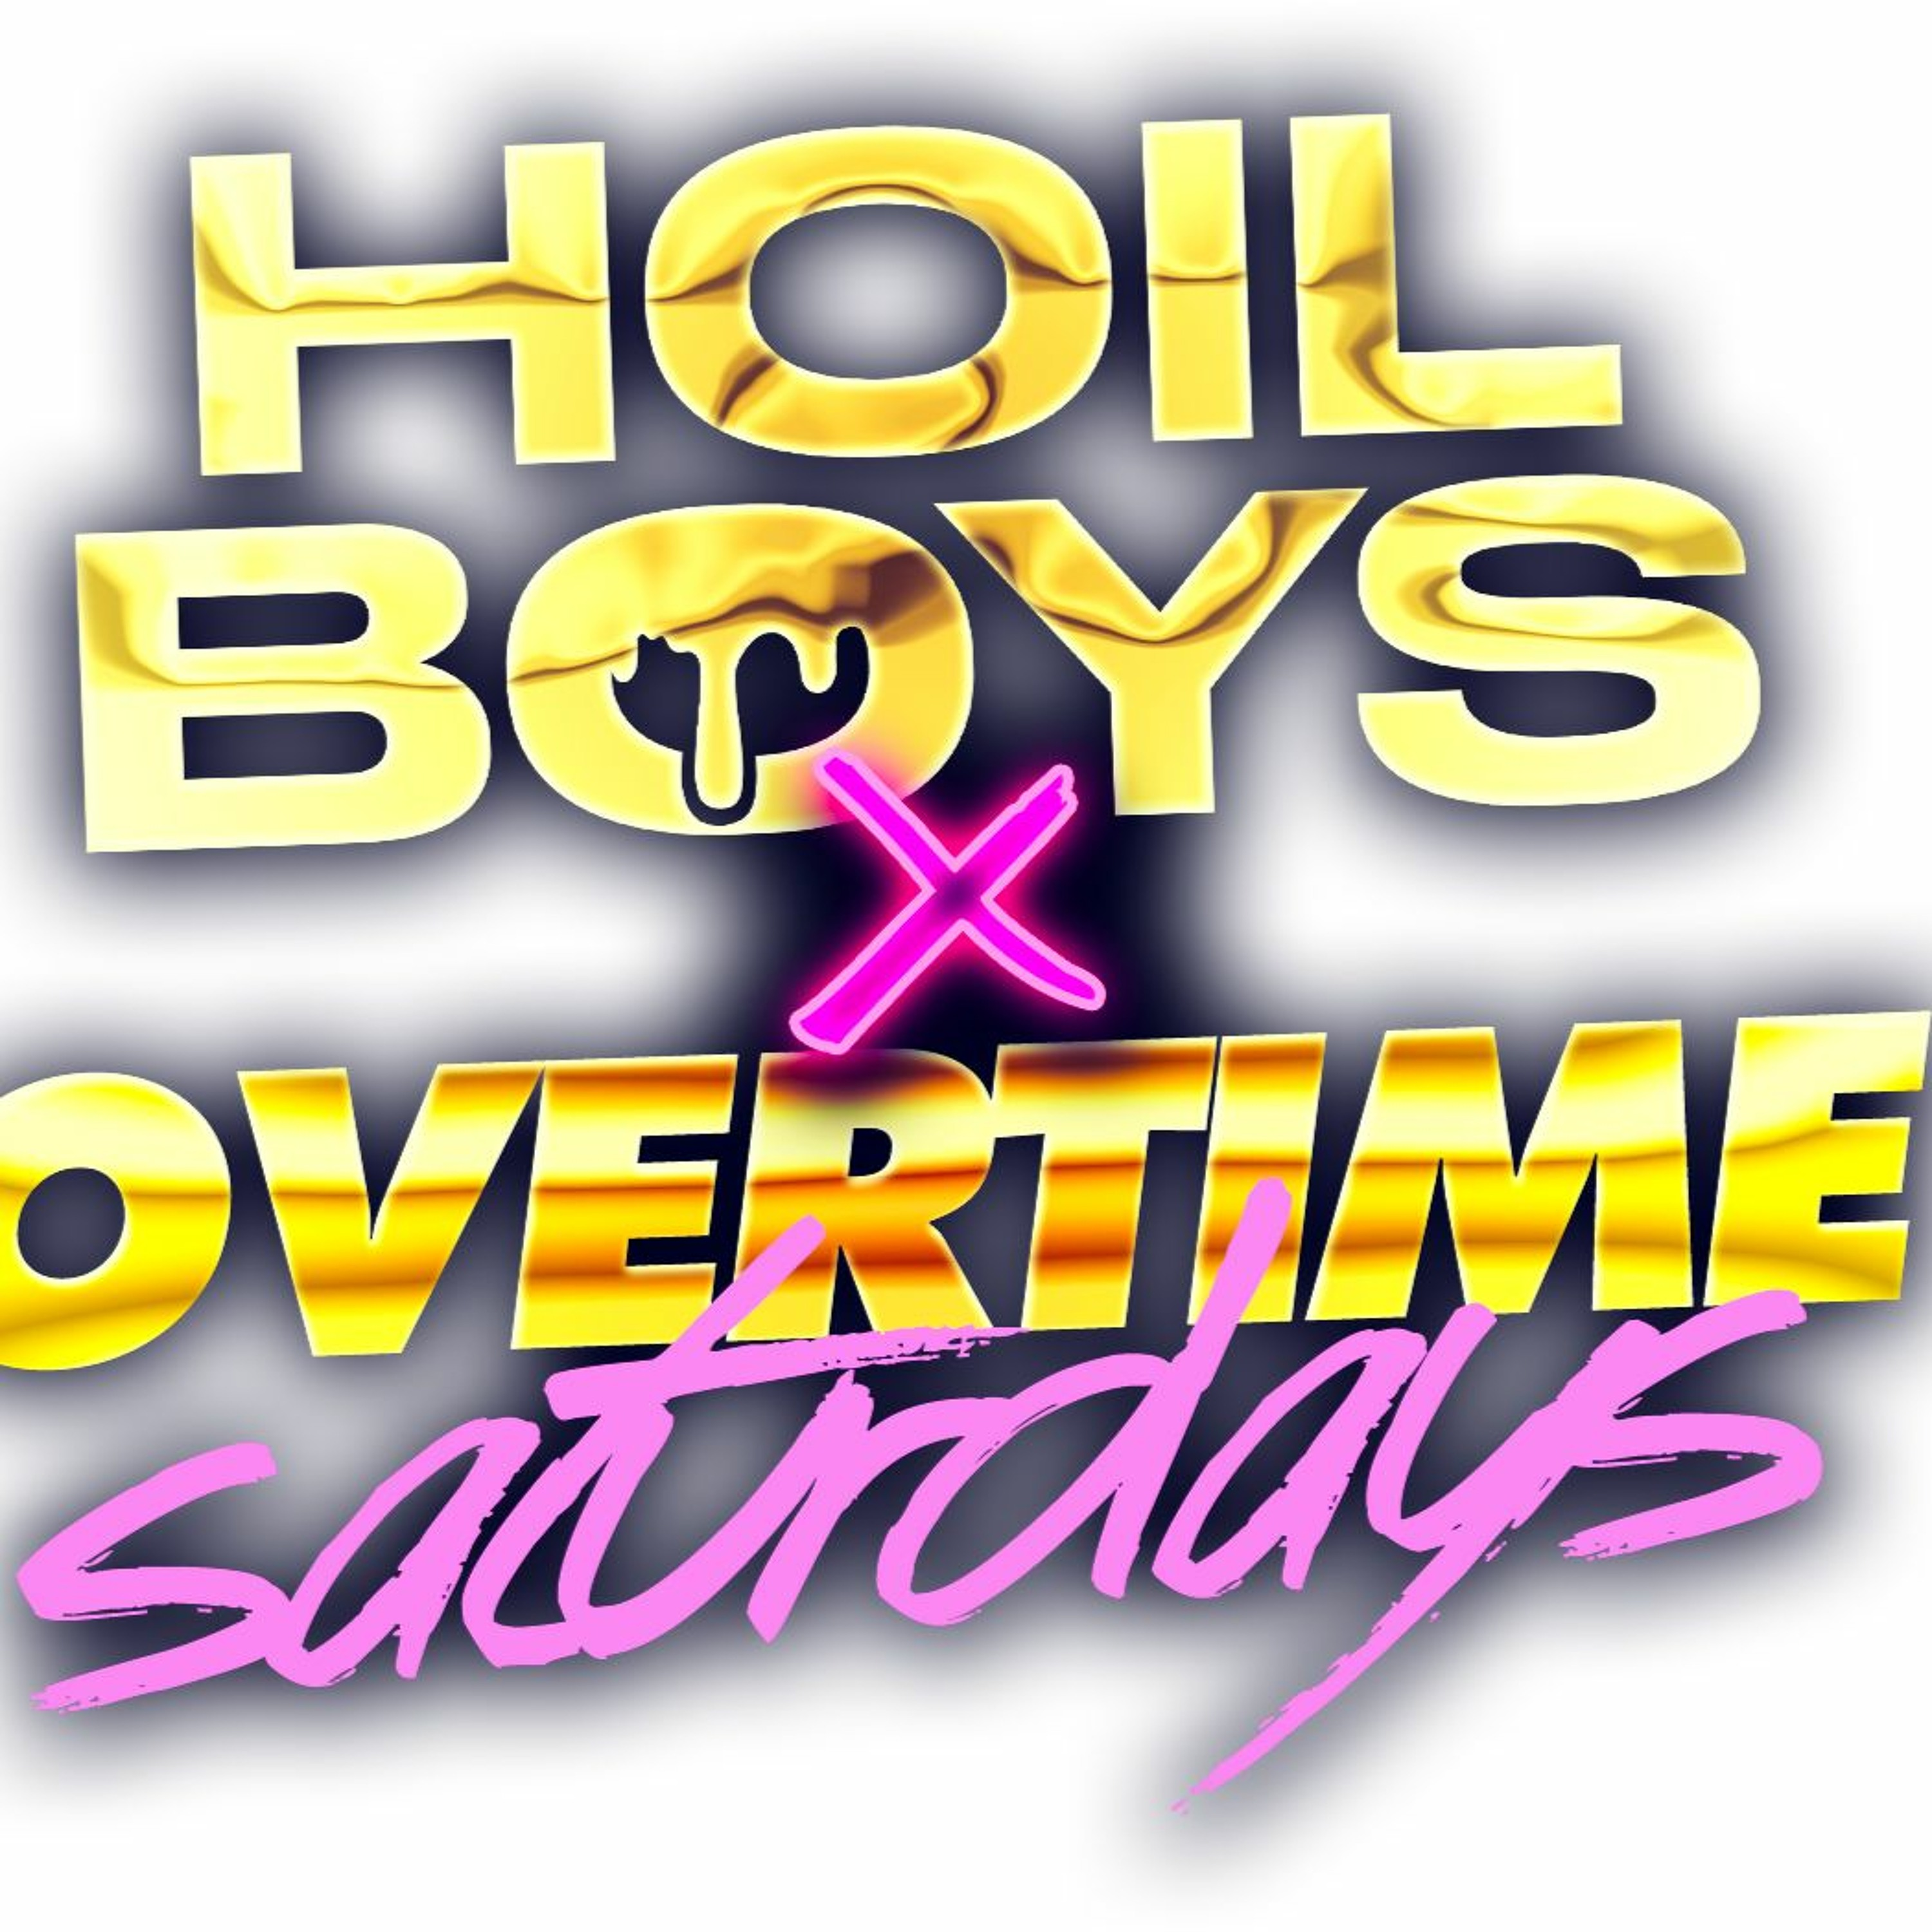 Hoil Boys X Overtime Saturdays Live Set by Spaceship Billy